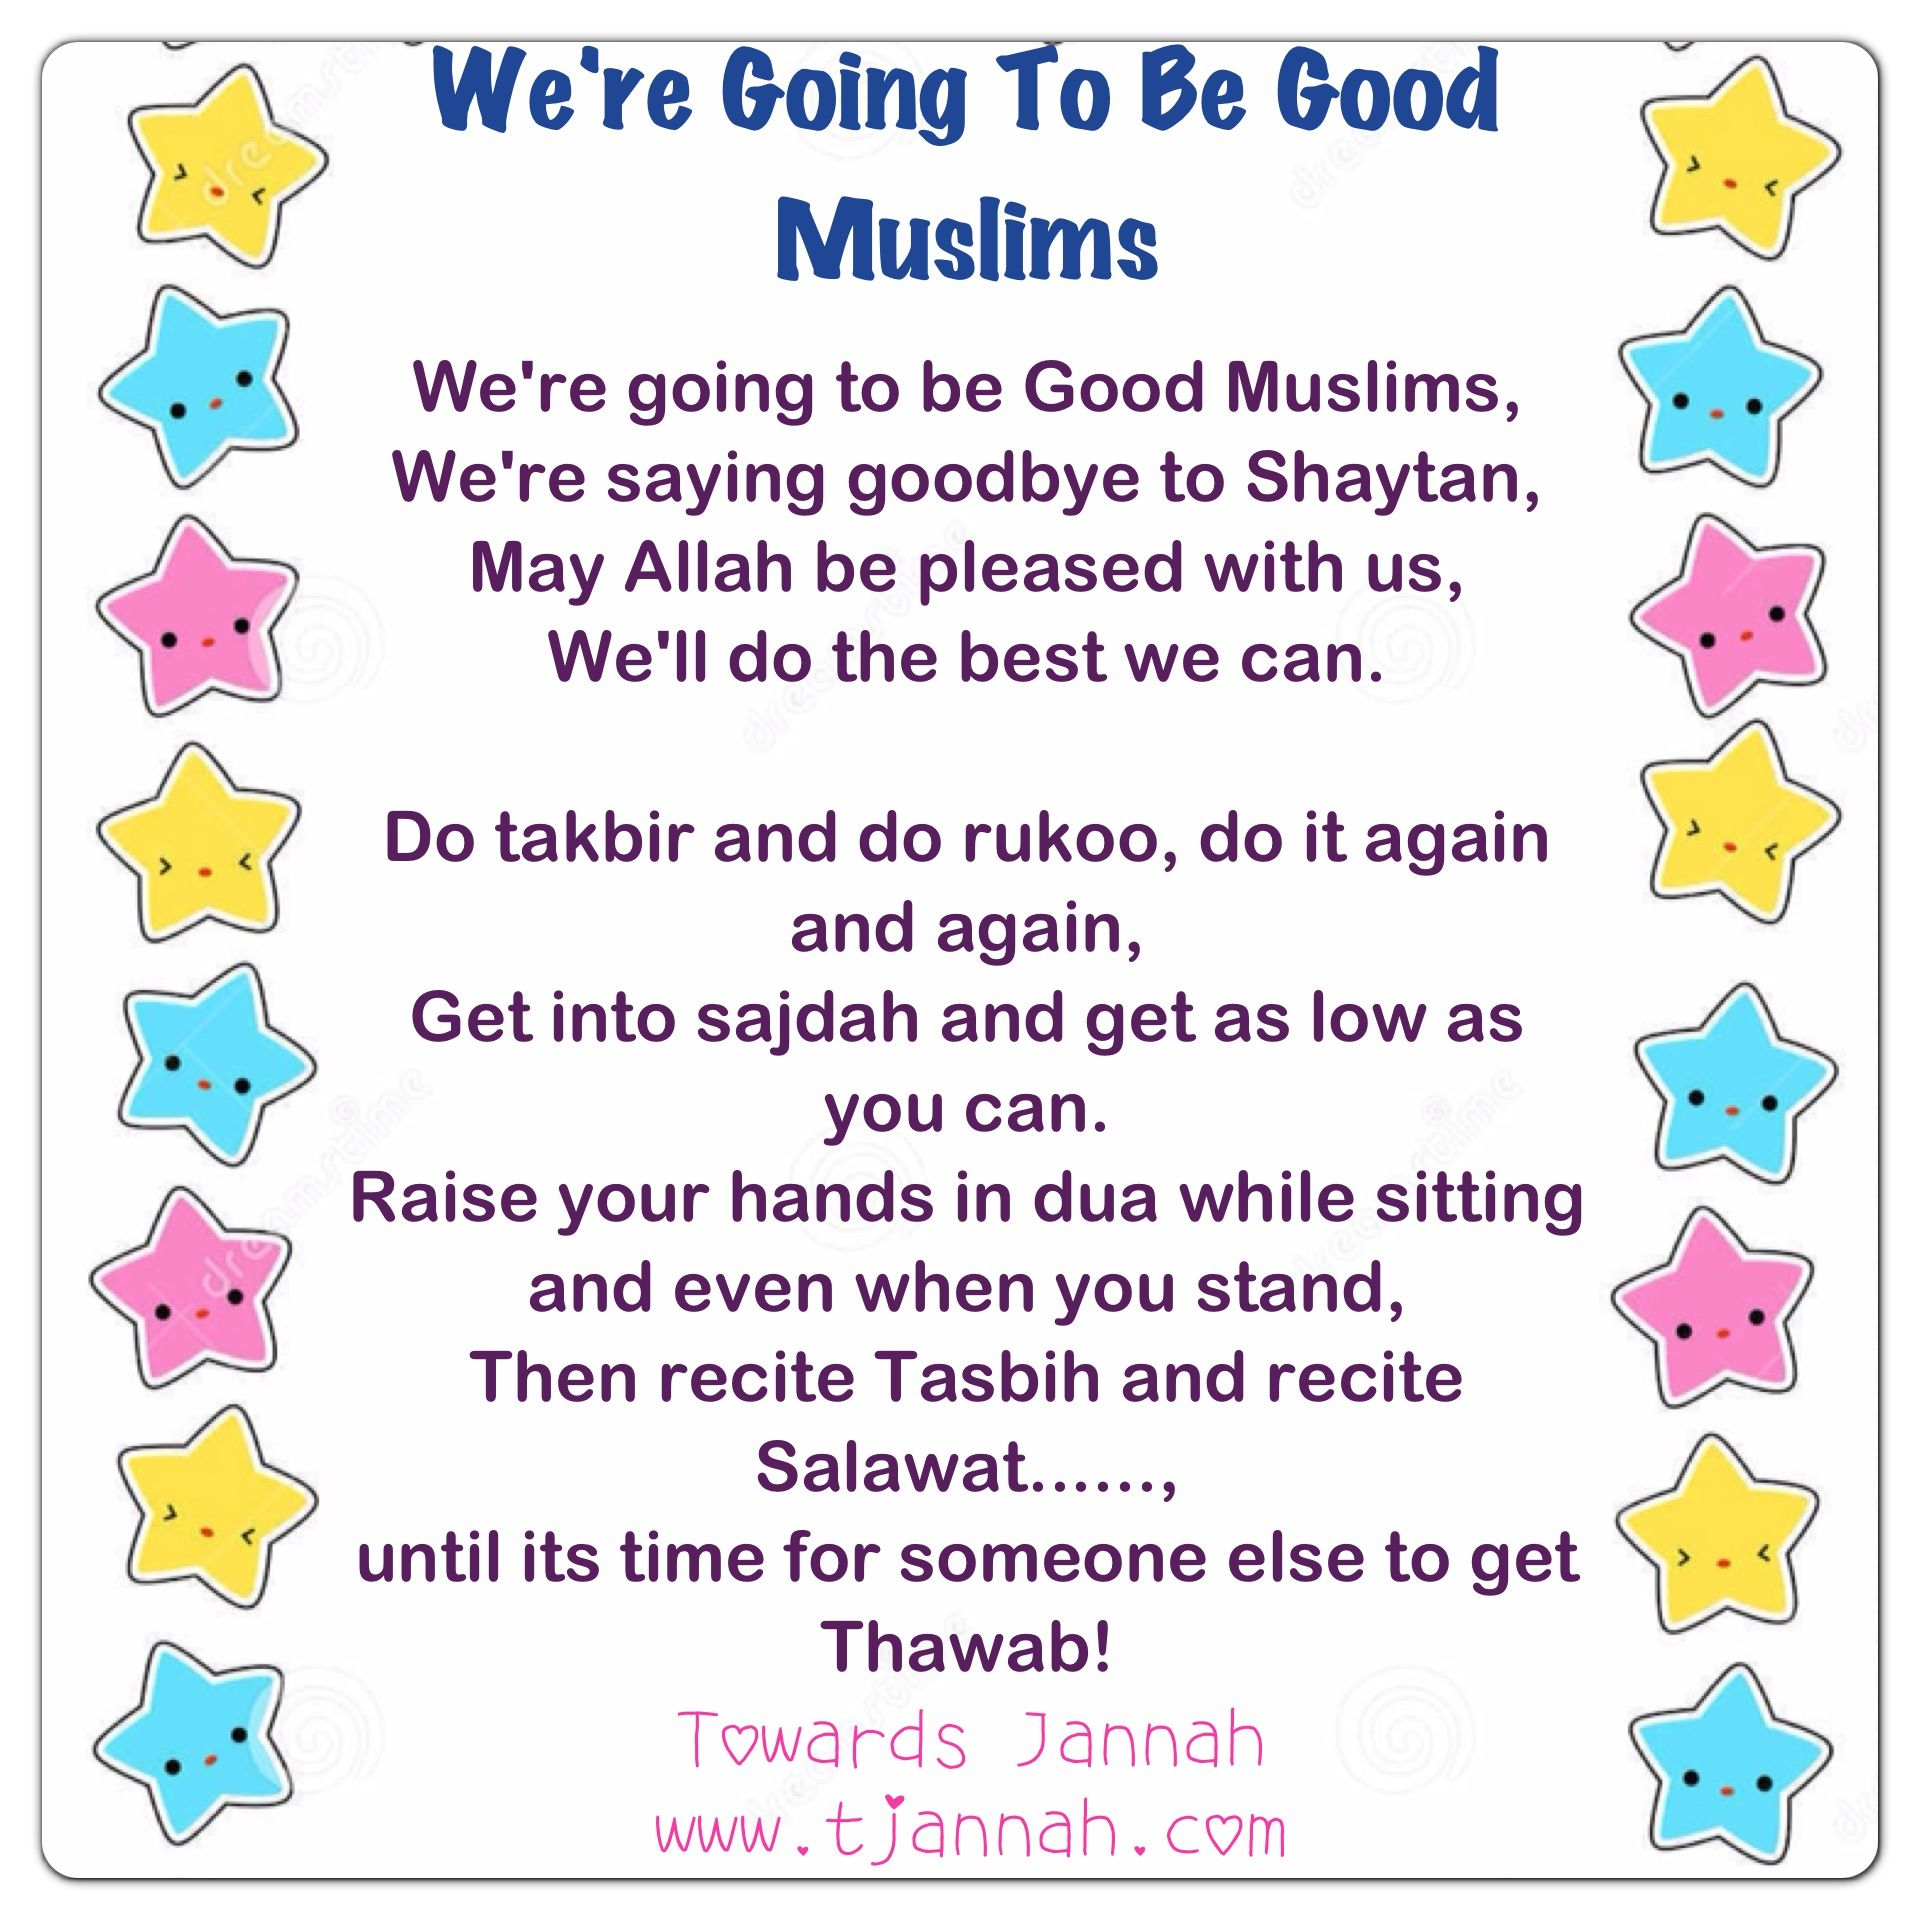 Ramadhan Rhyme Sung To The Tune Of We Re Going To